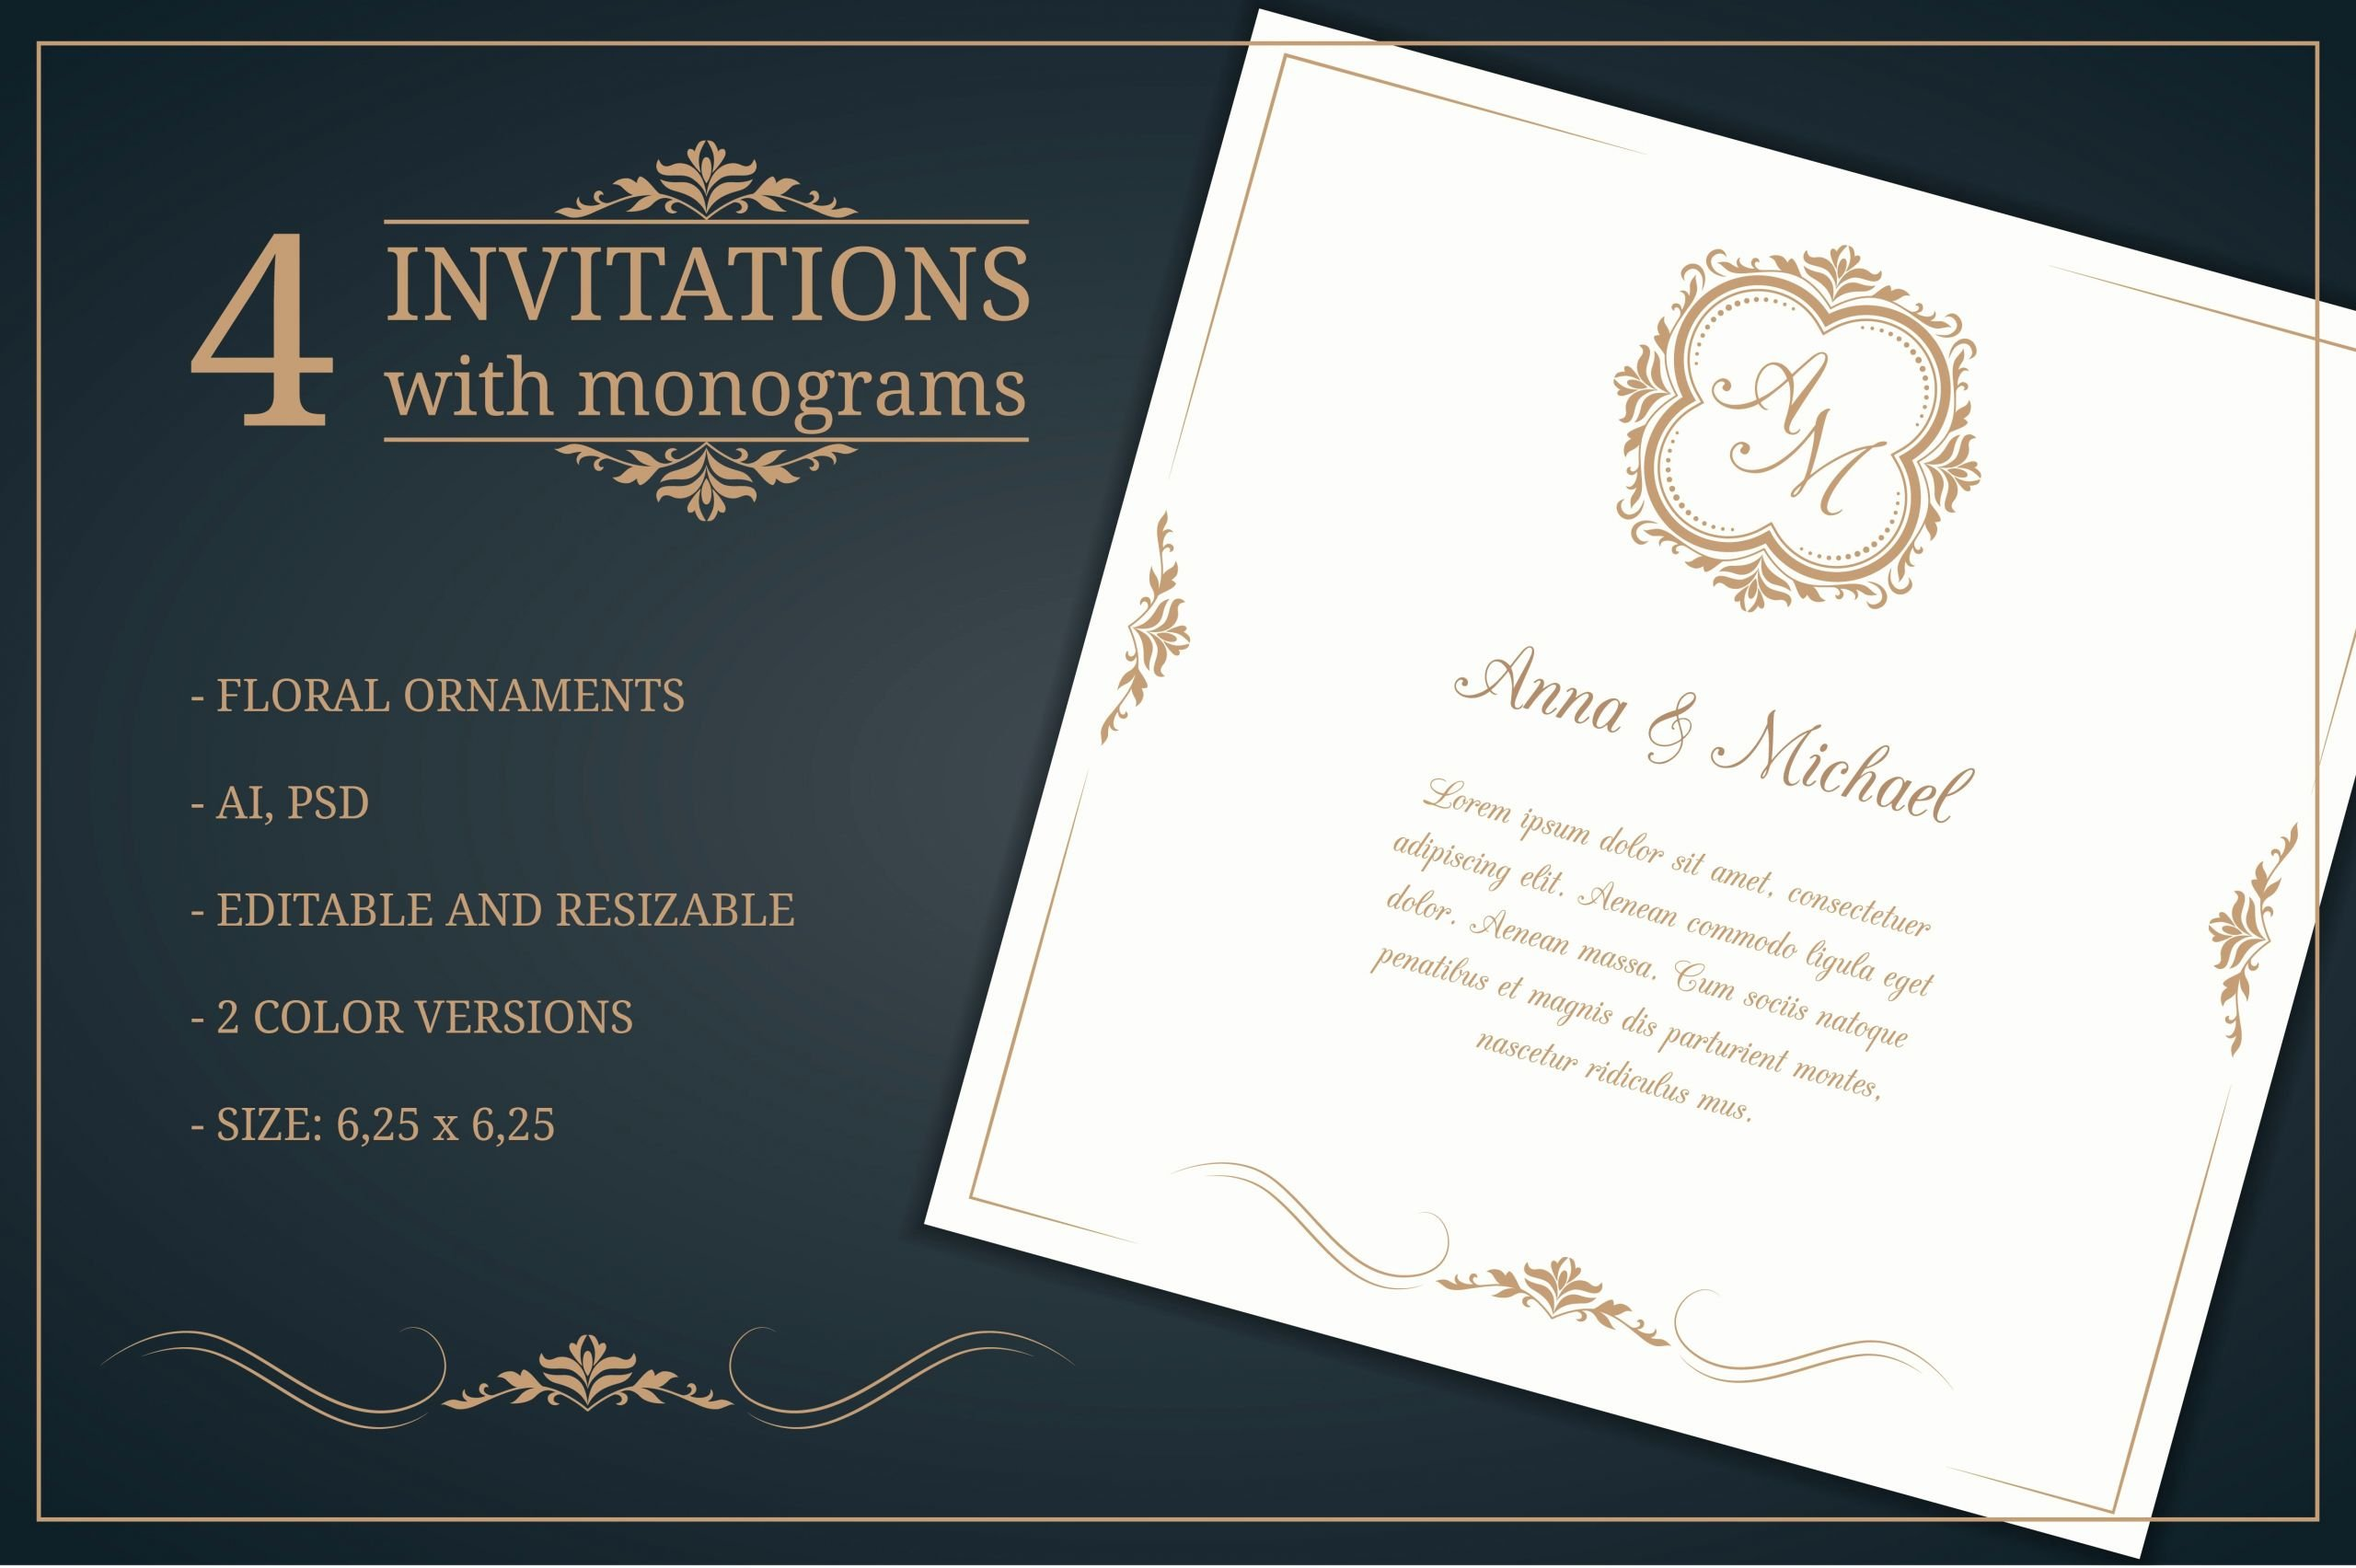 Wedding Invitation Template Free Download Lovely Wedding Invitations with Monograms Wedding Templates